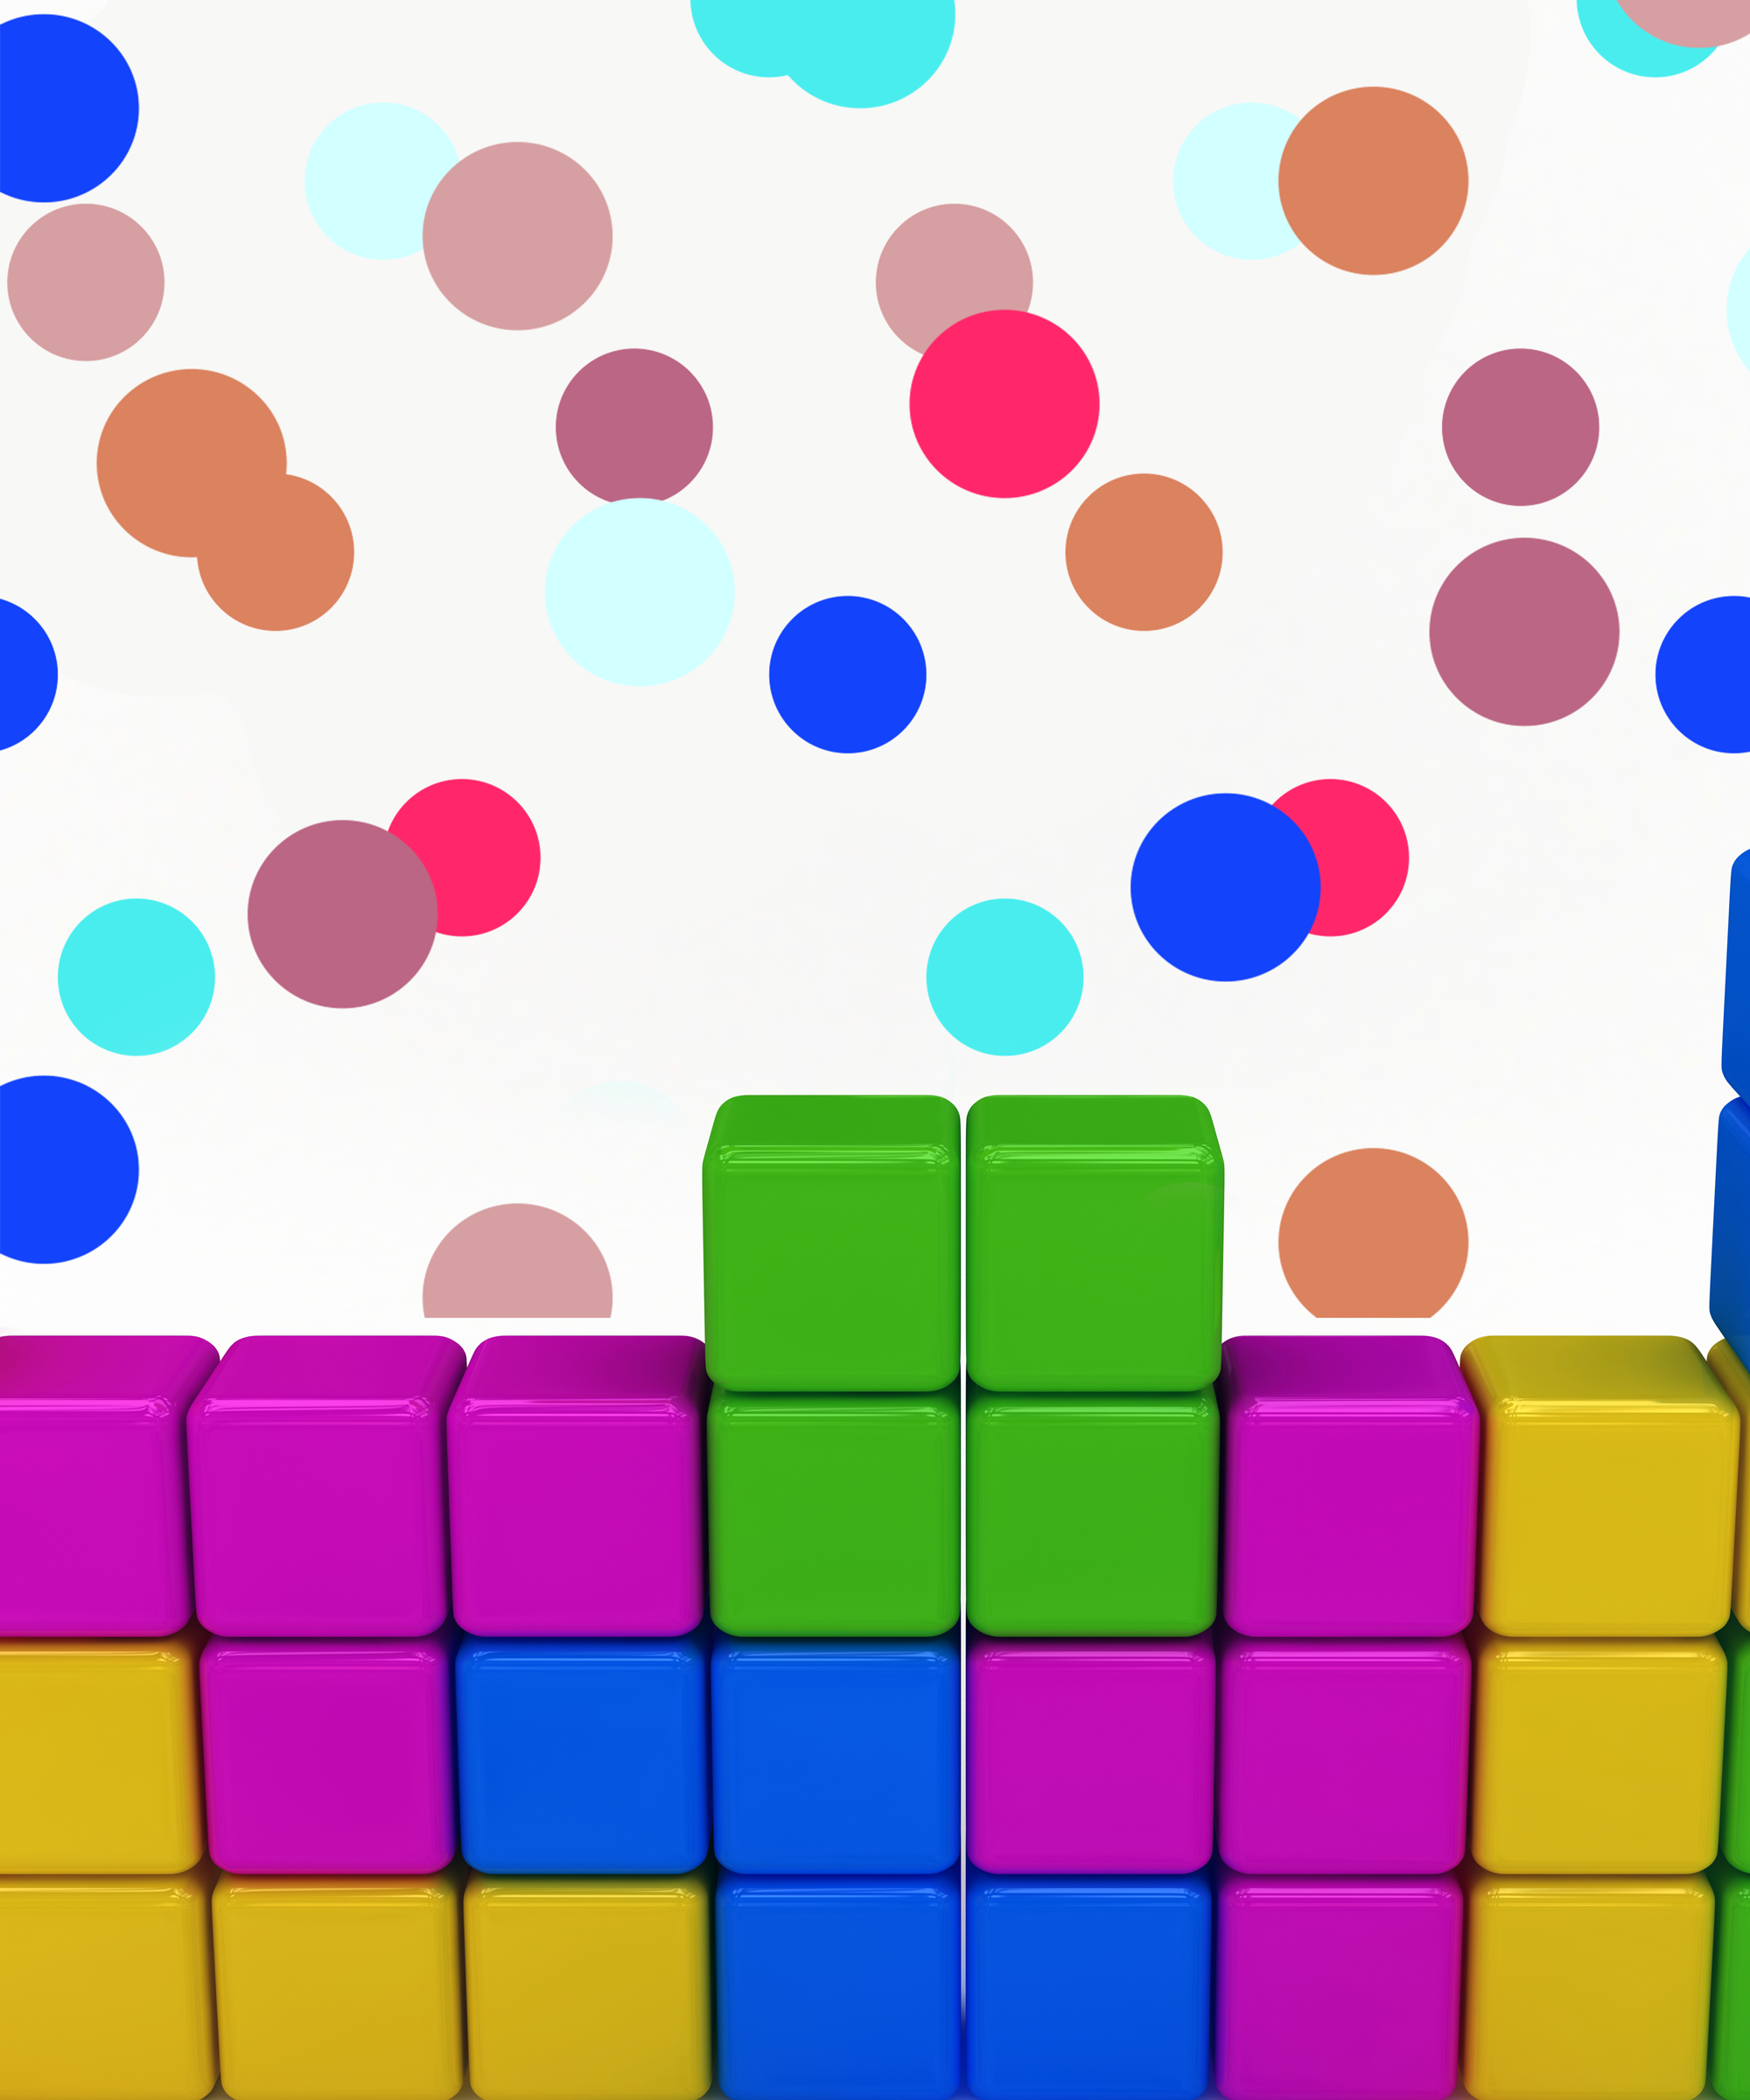 Tetris May Prevent Flashbacks After You're In A Gruesome Accident